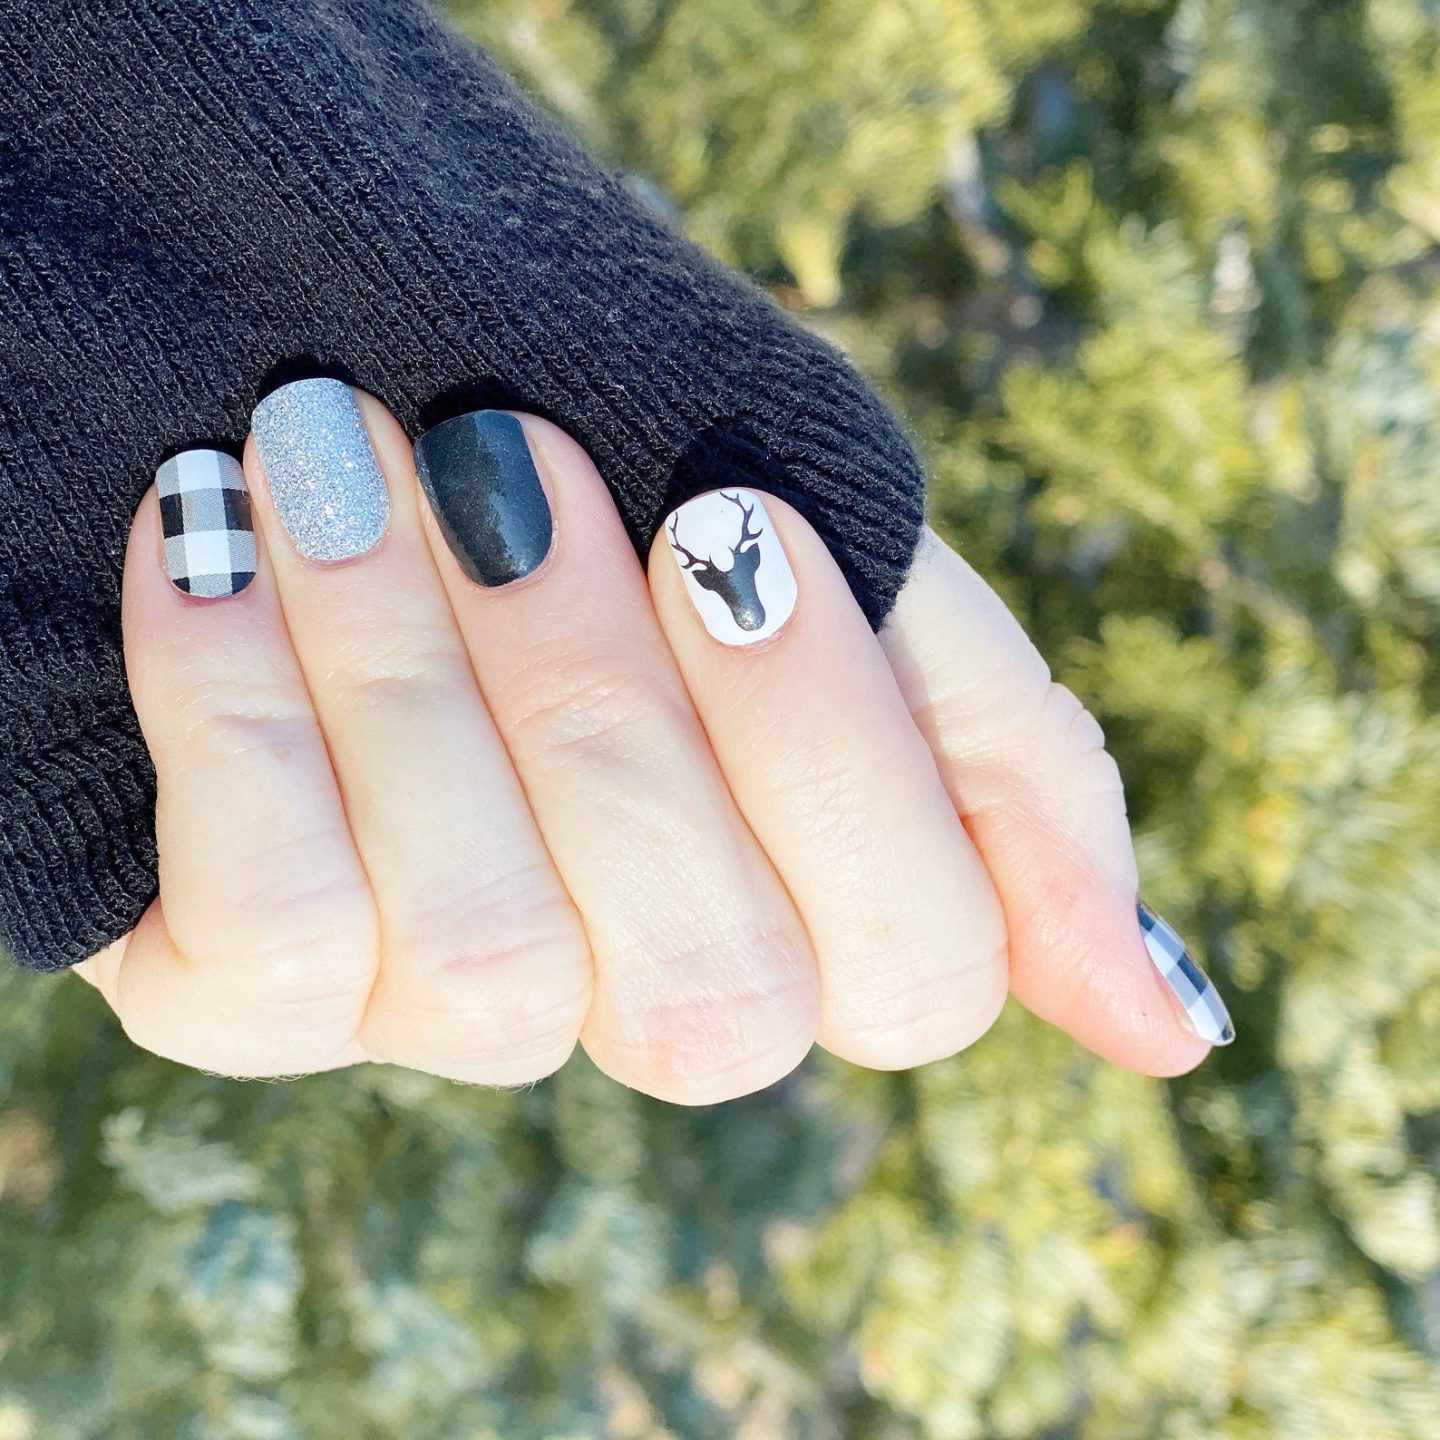 Short cute buffalo plaid nails in black and white